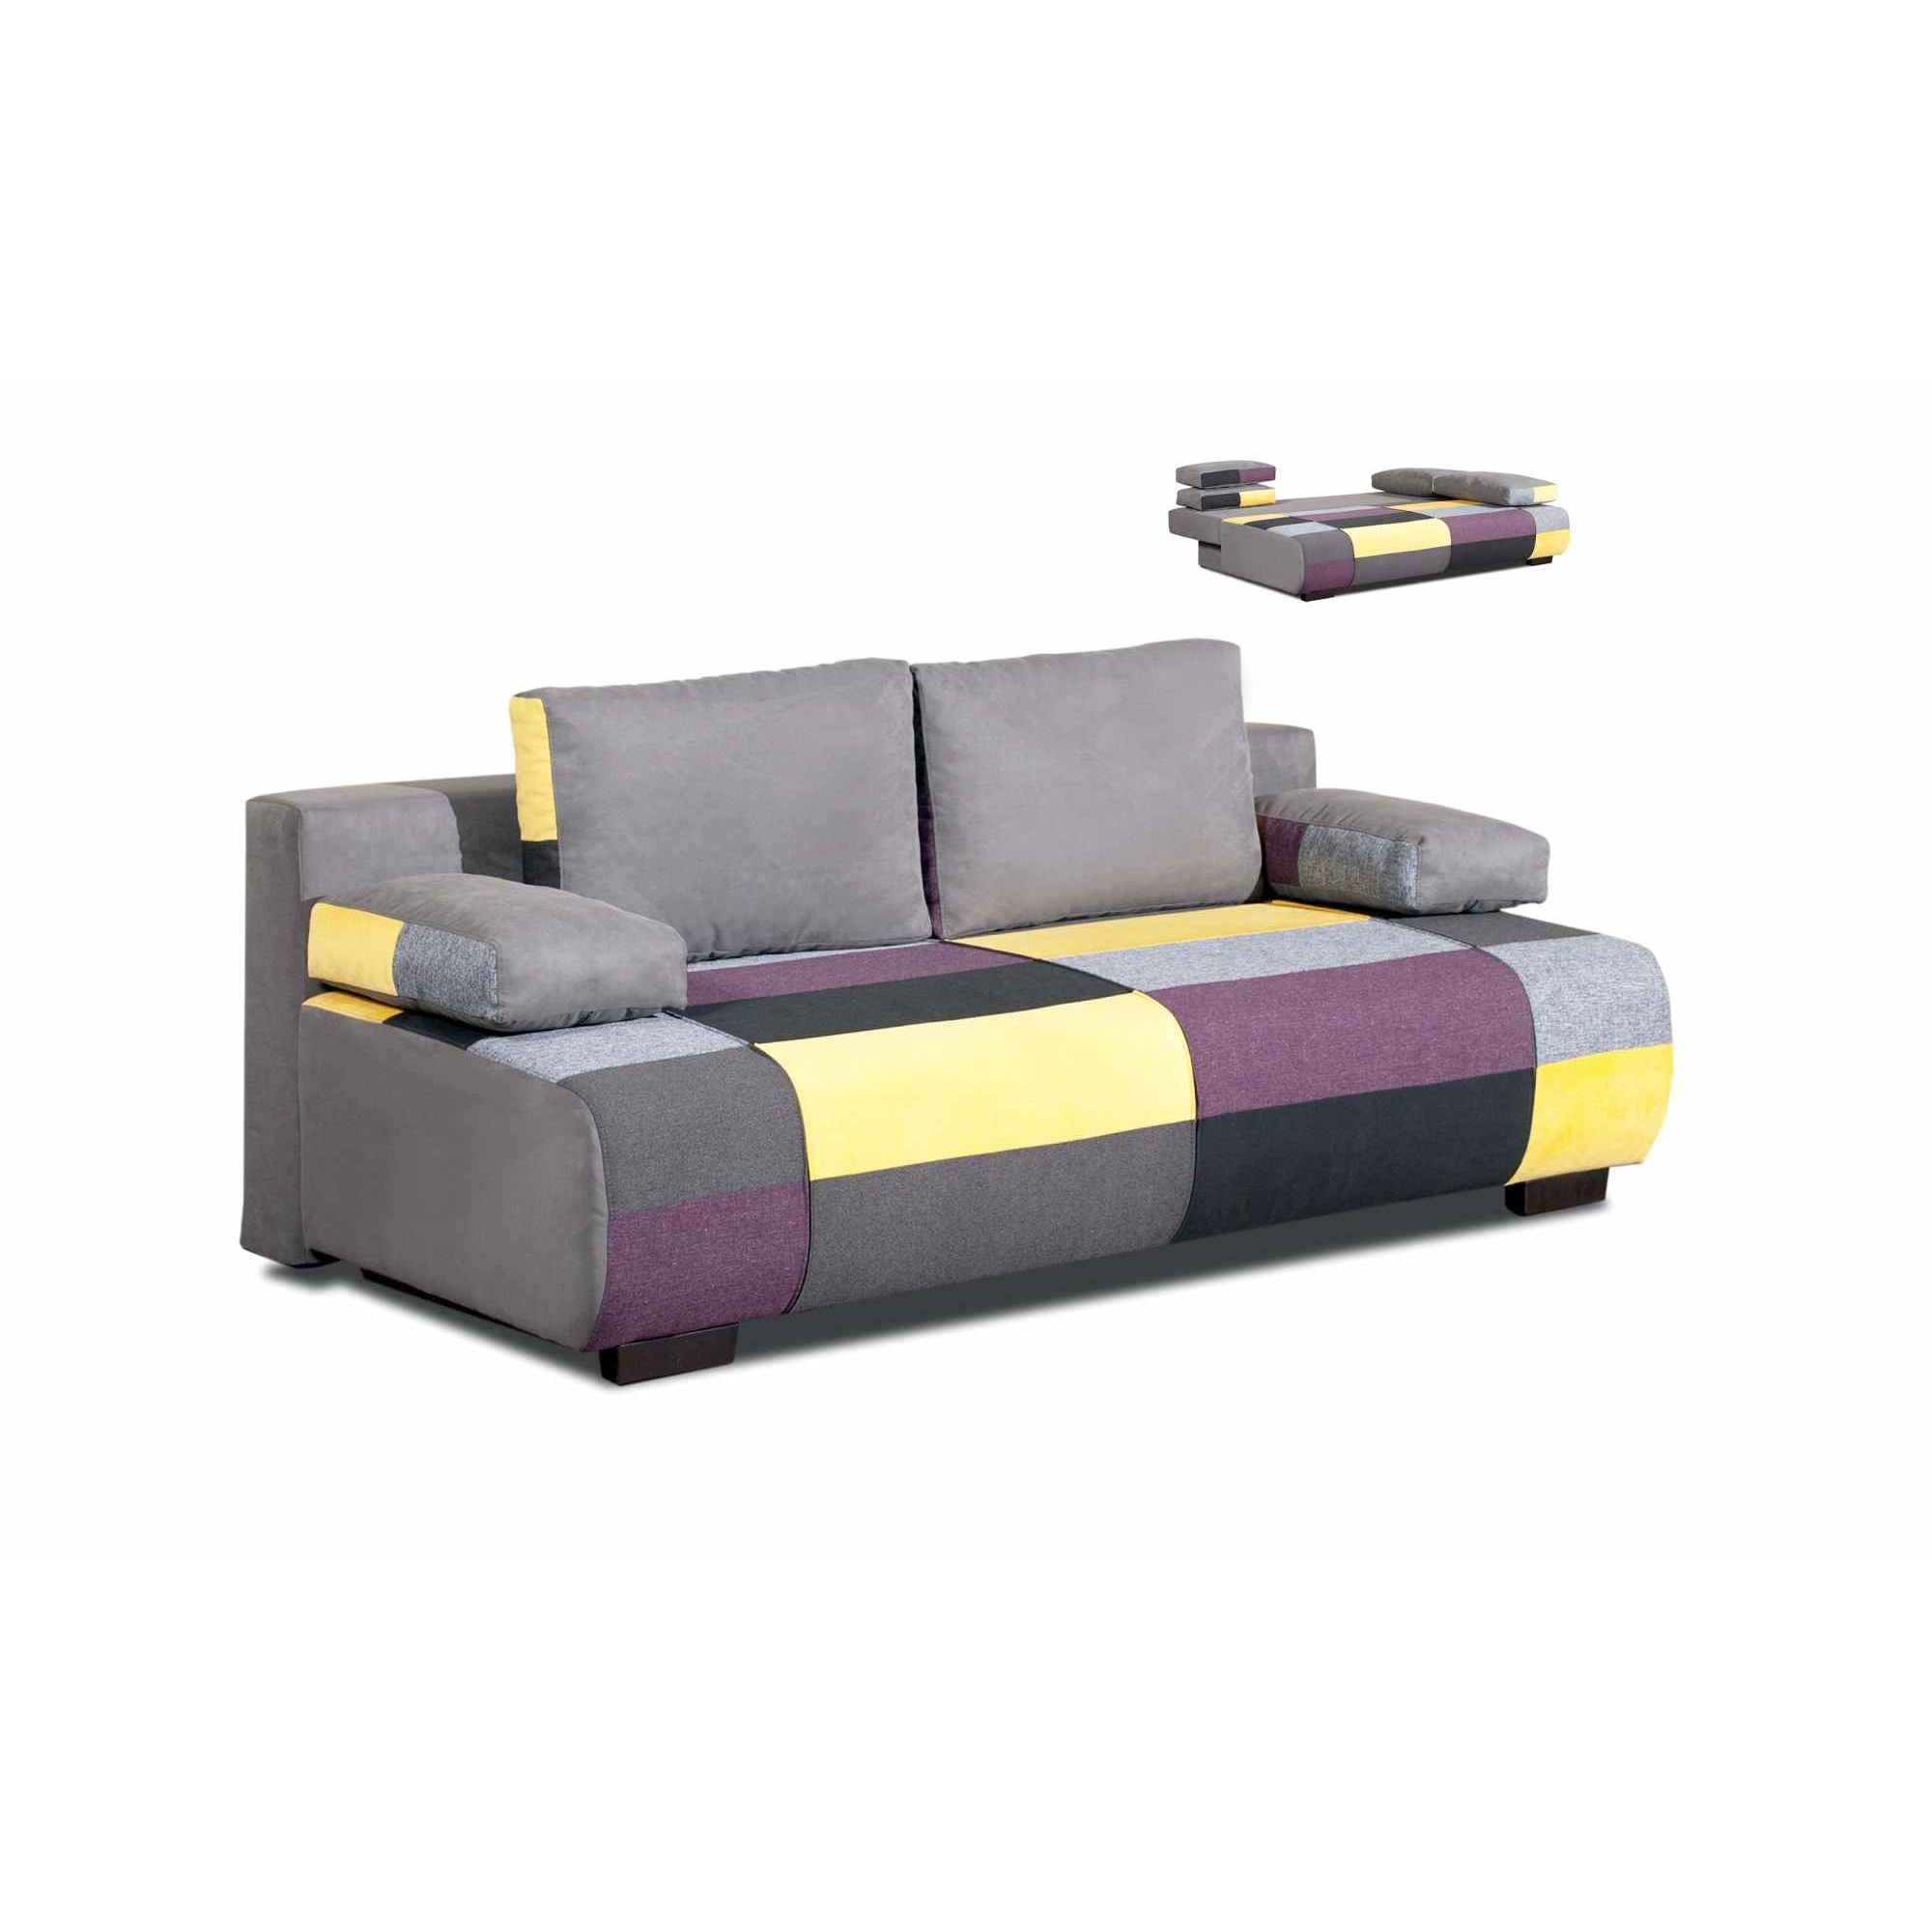 Deco in paris canape 3 places convertible en tissu jaune for Canape tissu convertible